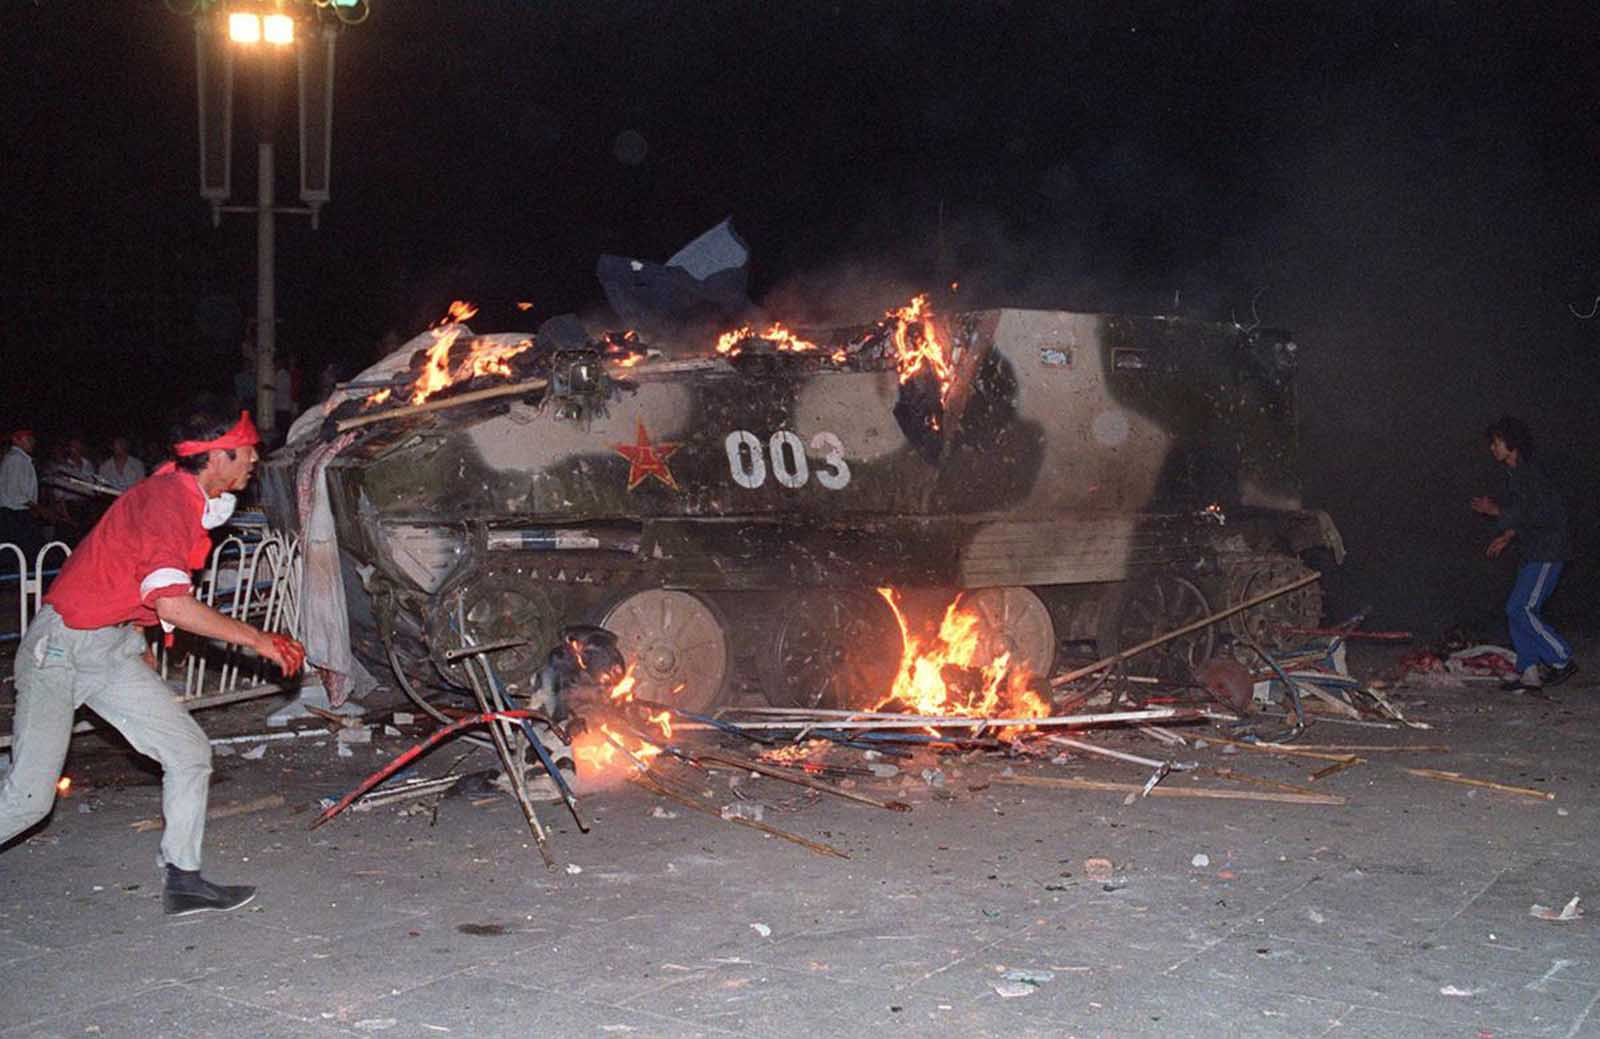 An armored personnel carrier, in flames after students set it on fire near Tiananmen Square, on June 4, 1989.